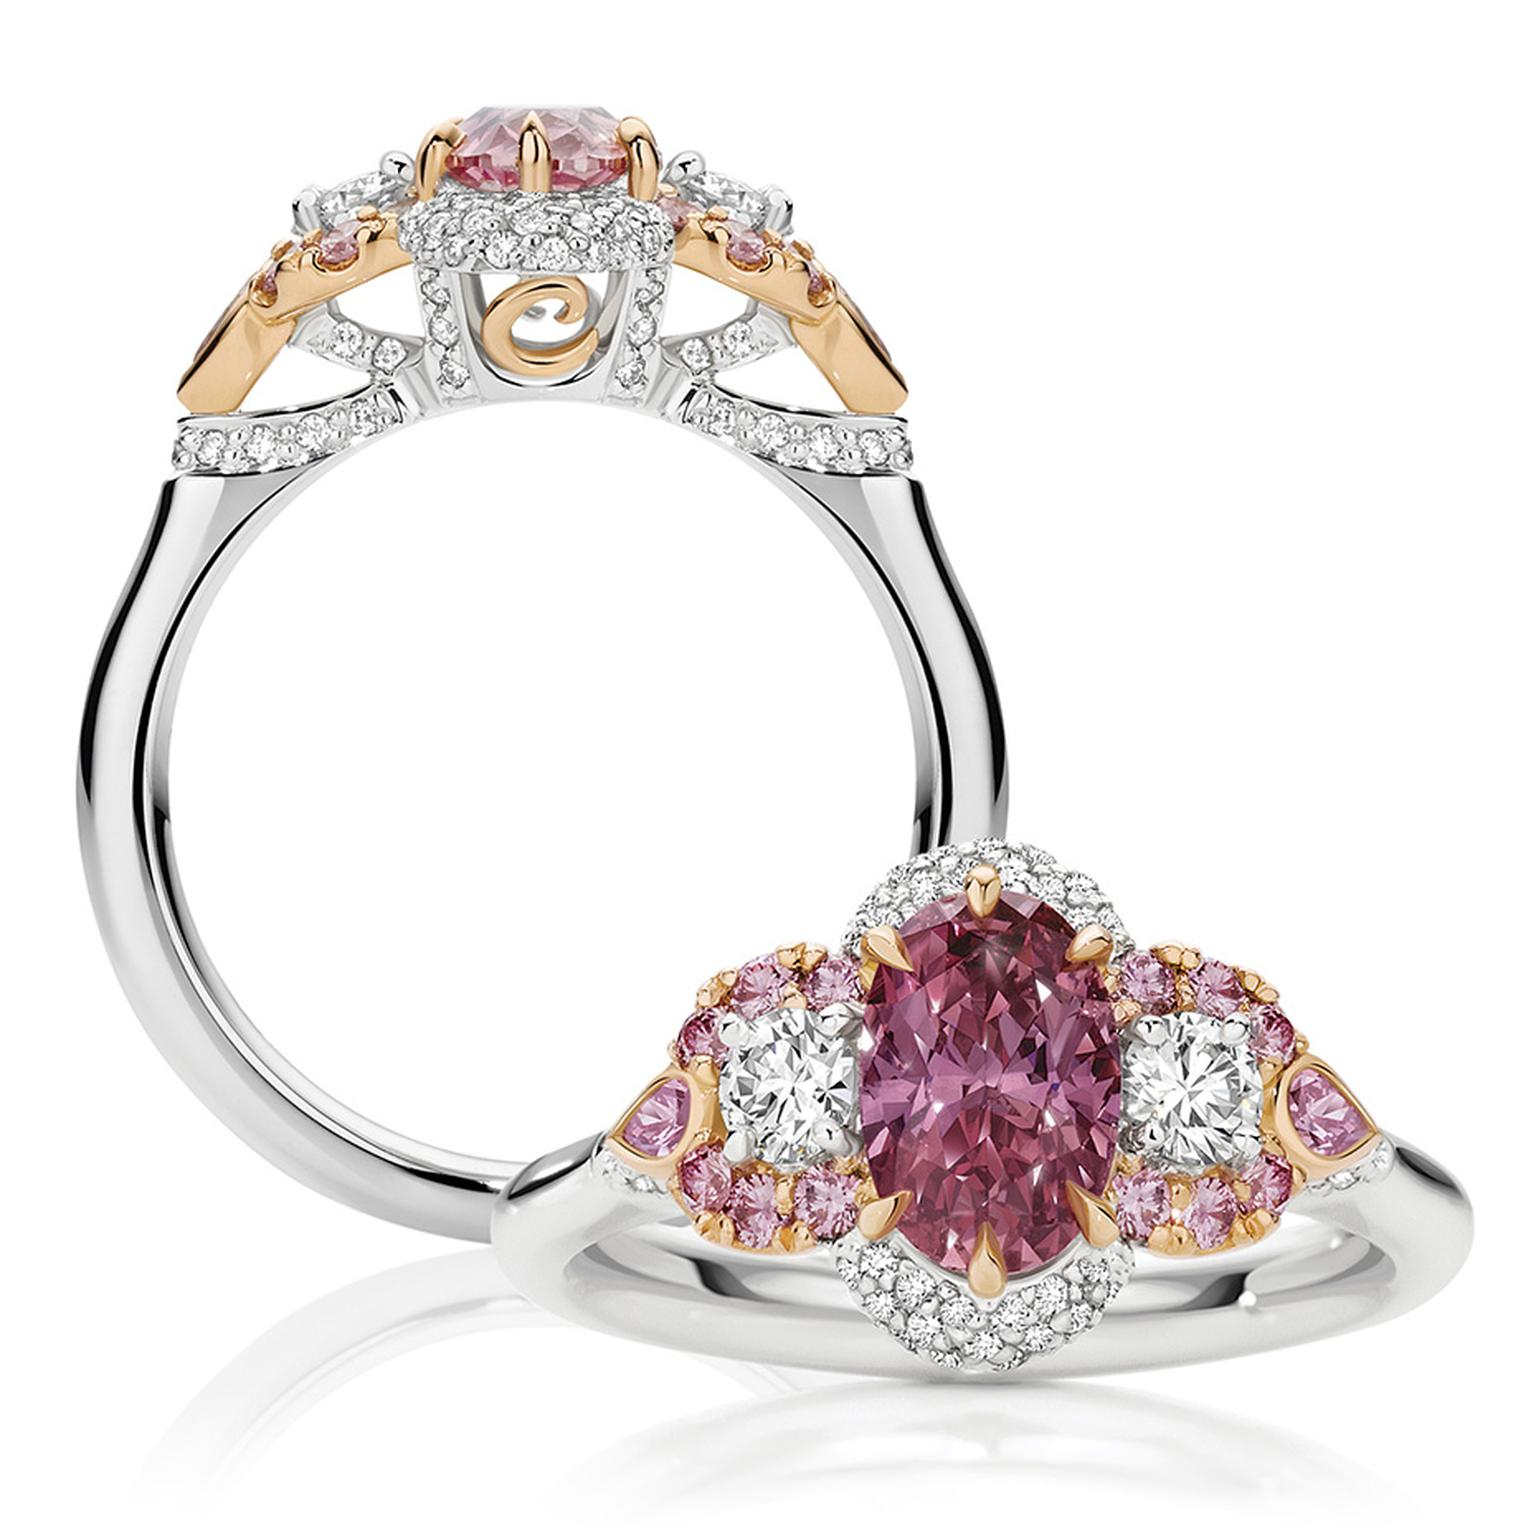 Calleija Antoinette engagement ring, set with a 1.05ct Argyle Pink diamond surrounded by pink and white diamonds.